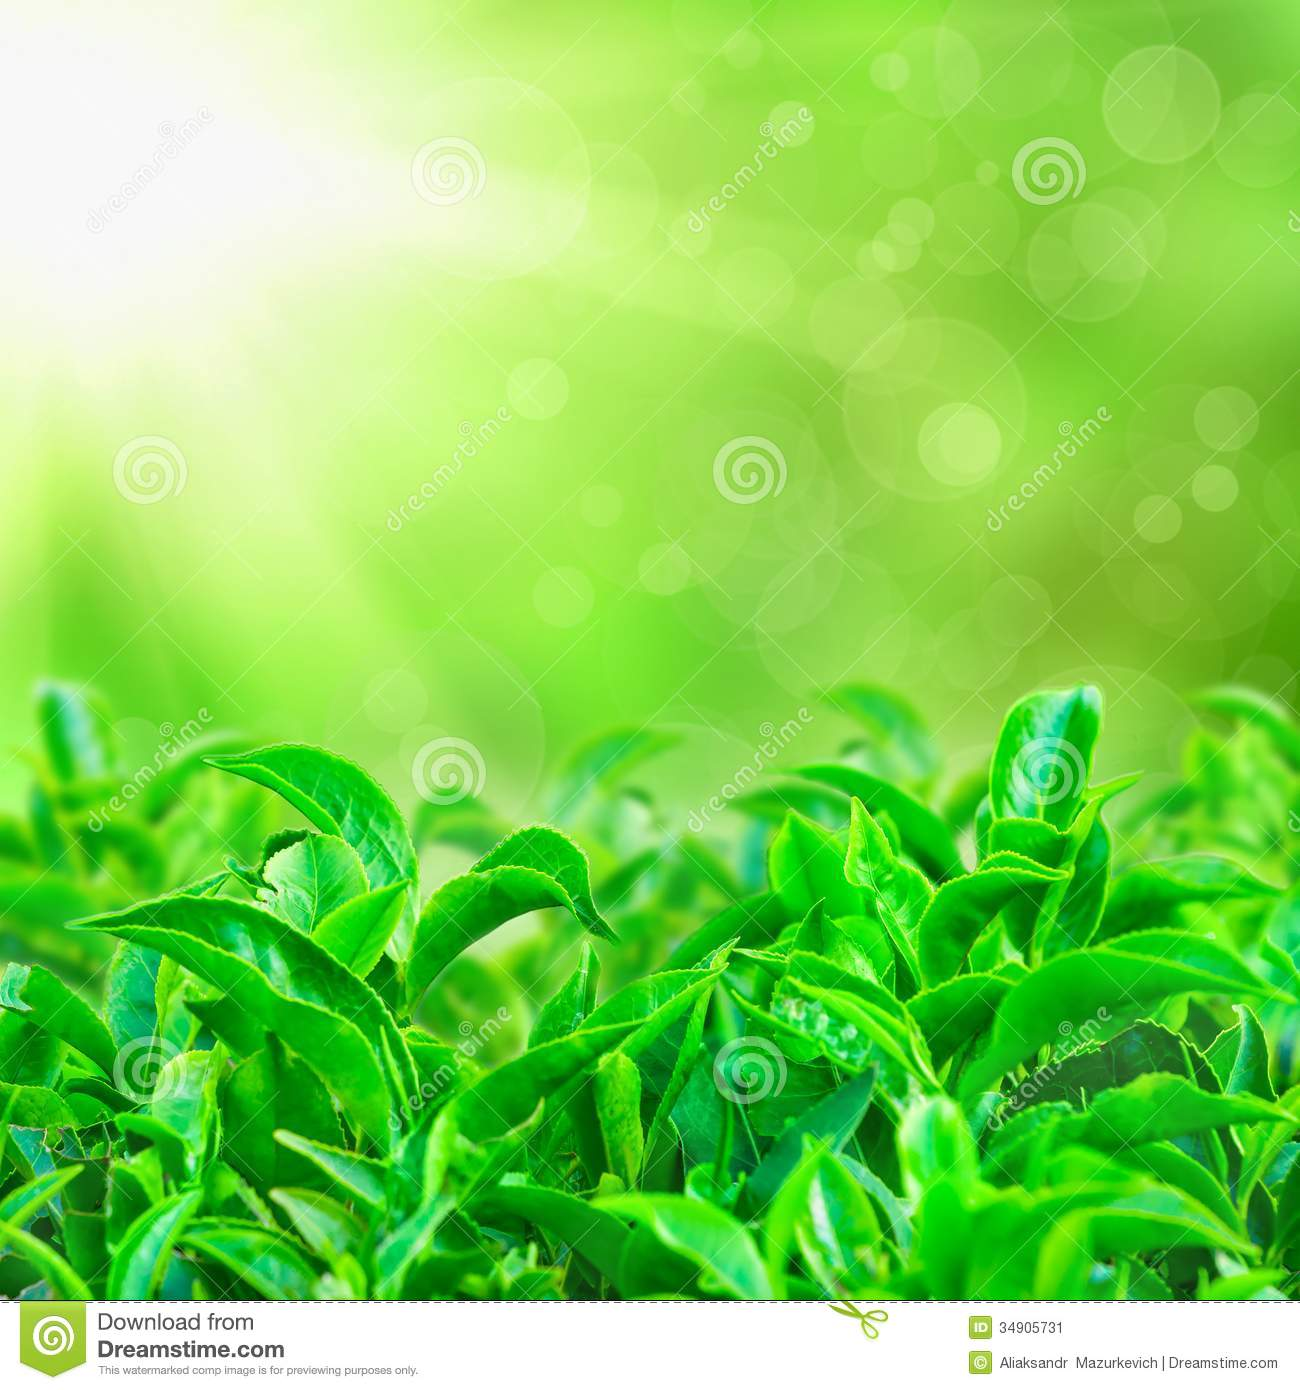 Fresh Green Tea Leaves With Sun Beams Stock Image - Image: 34905731